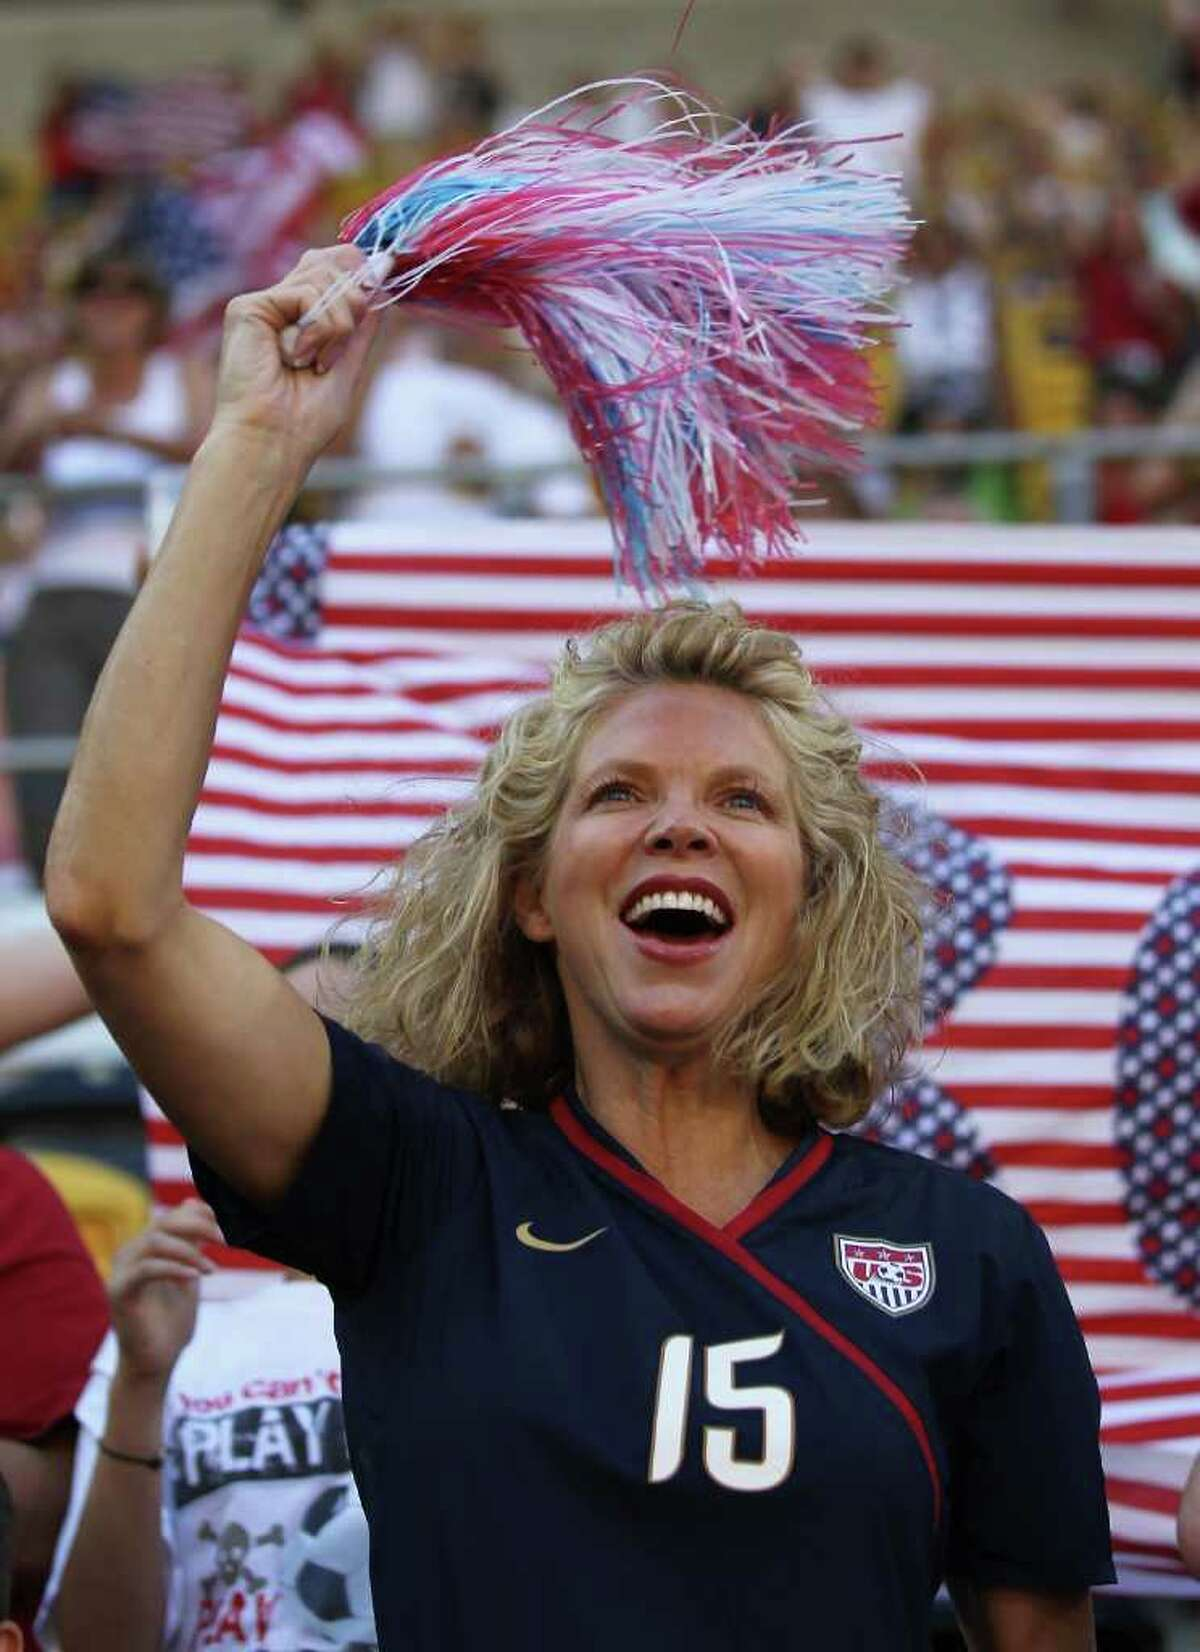 DRESDEN, GERMANY - JUNE 28: A fan of USA celebrates prior to the FIFA Women's World Cup Group C match between USA and Korea at Rudolf-Harbig-Stadion on June 28, 2011 in Dresden, Germany. (Photo by Boris Streubel/Getty Images)